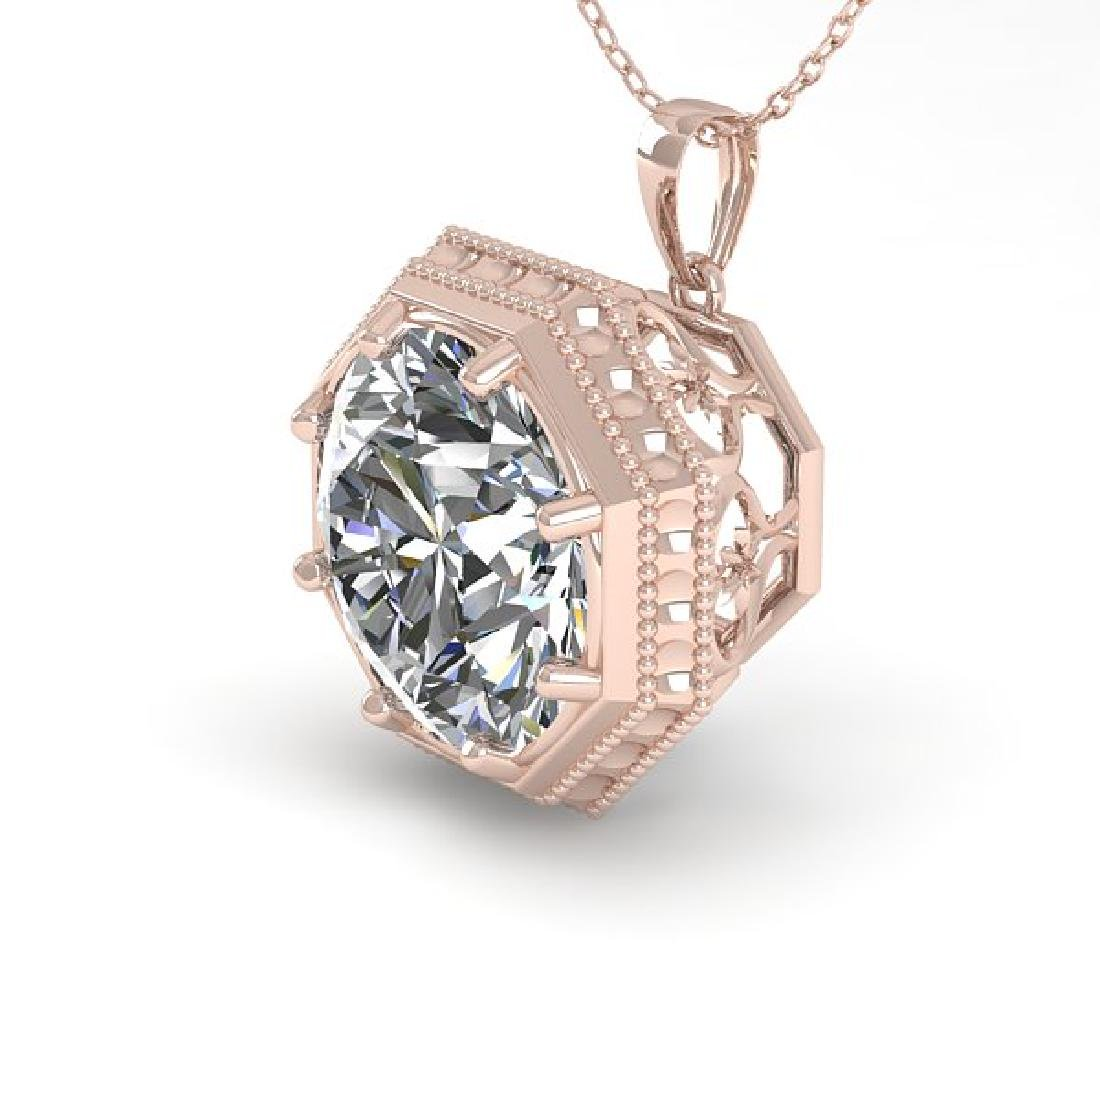 1.50 CTW Certified VS/SI Diamond Necklace 14K Rose Gold